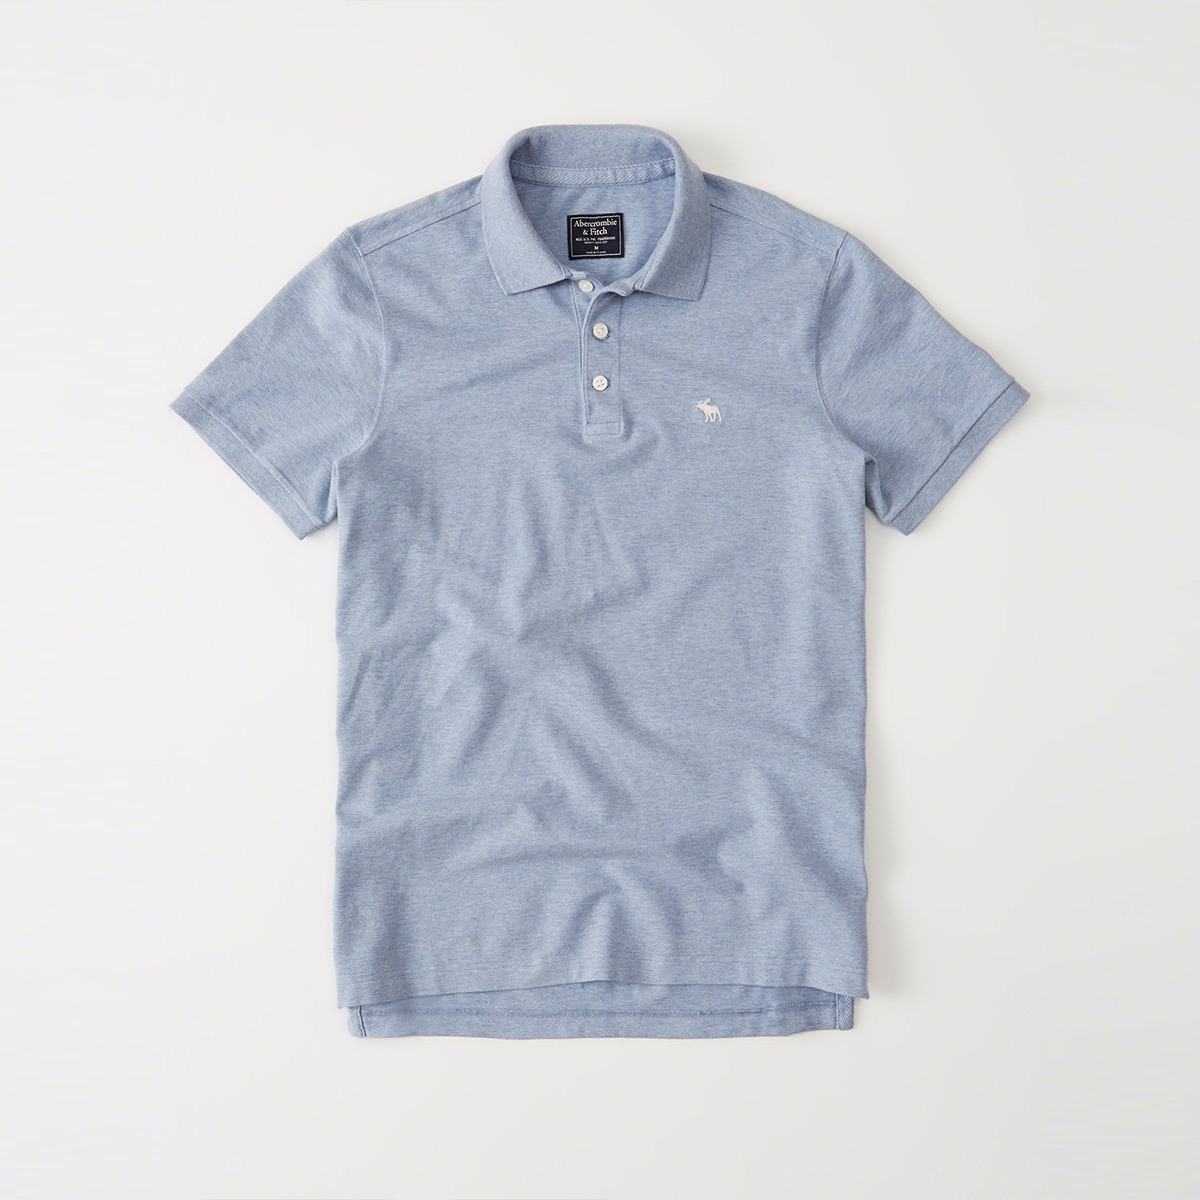 dc3f30aa86 Polo Camisero Abercrombie And Fitch Original En Oferta - S  120